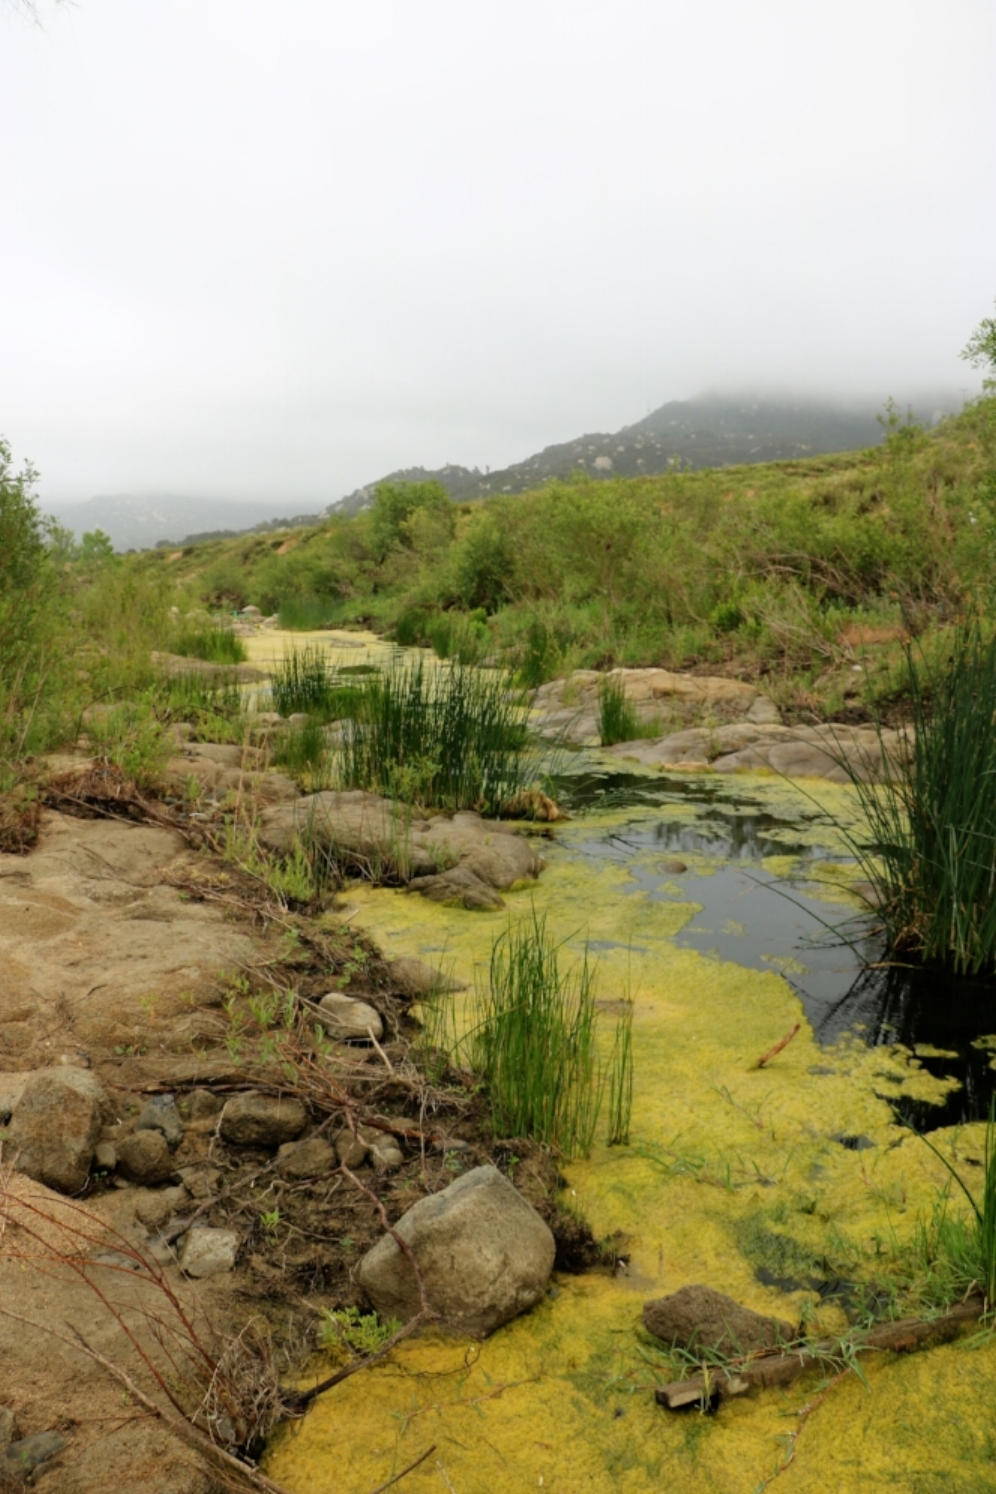 Western pond turtle ( Actinemys   marmorata ) habitat in Riverside County, California. Photograph by George L. Heinrich.